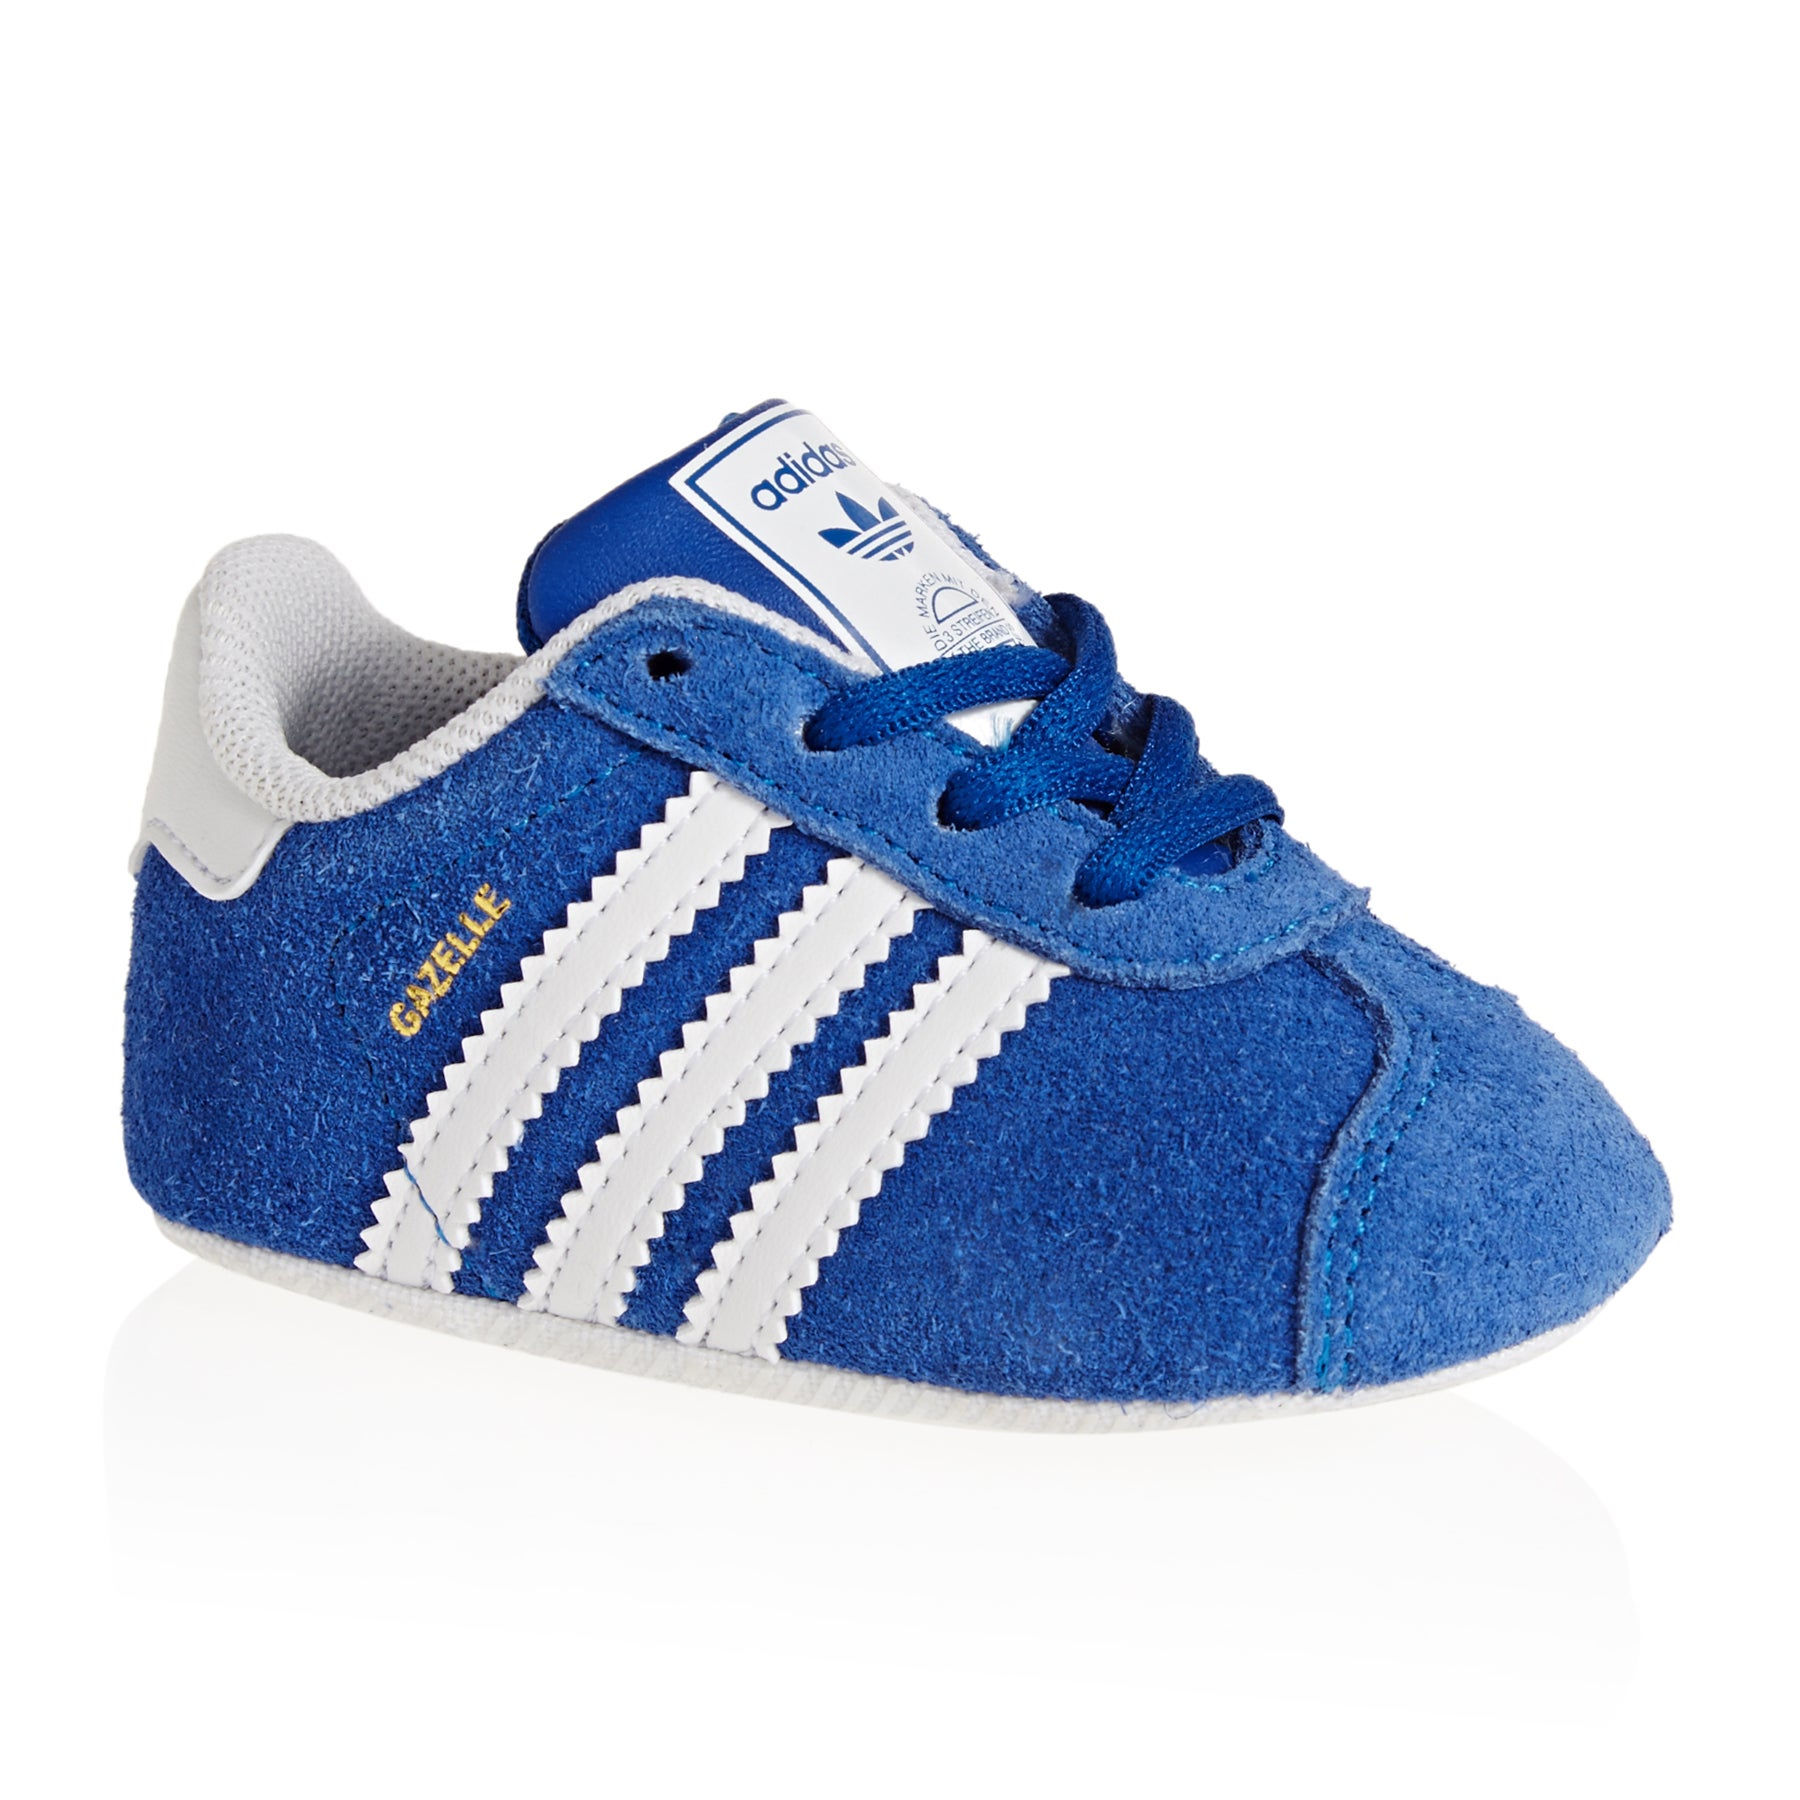 535d9715b07 Adidas Originals Gazelle Crib Kids Shoes available from Surfdome